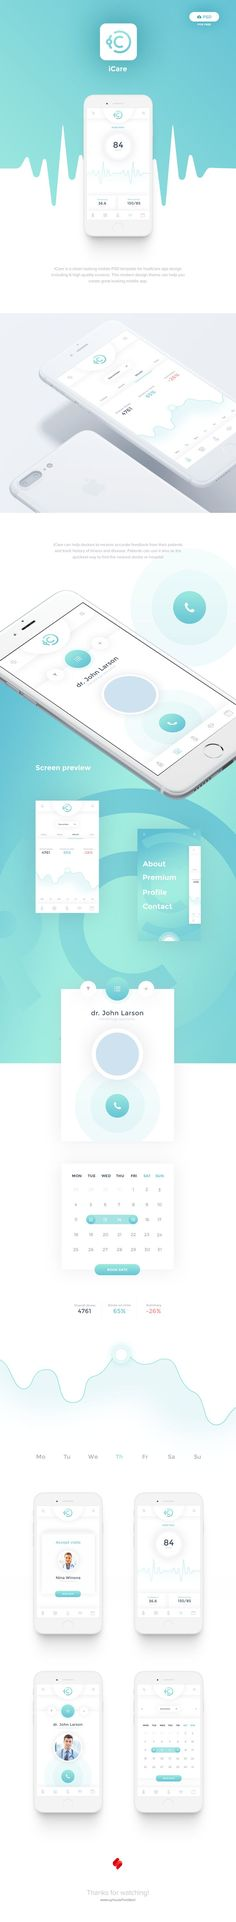 iCare Free Mobile App PSD on Behance